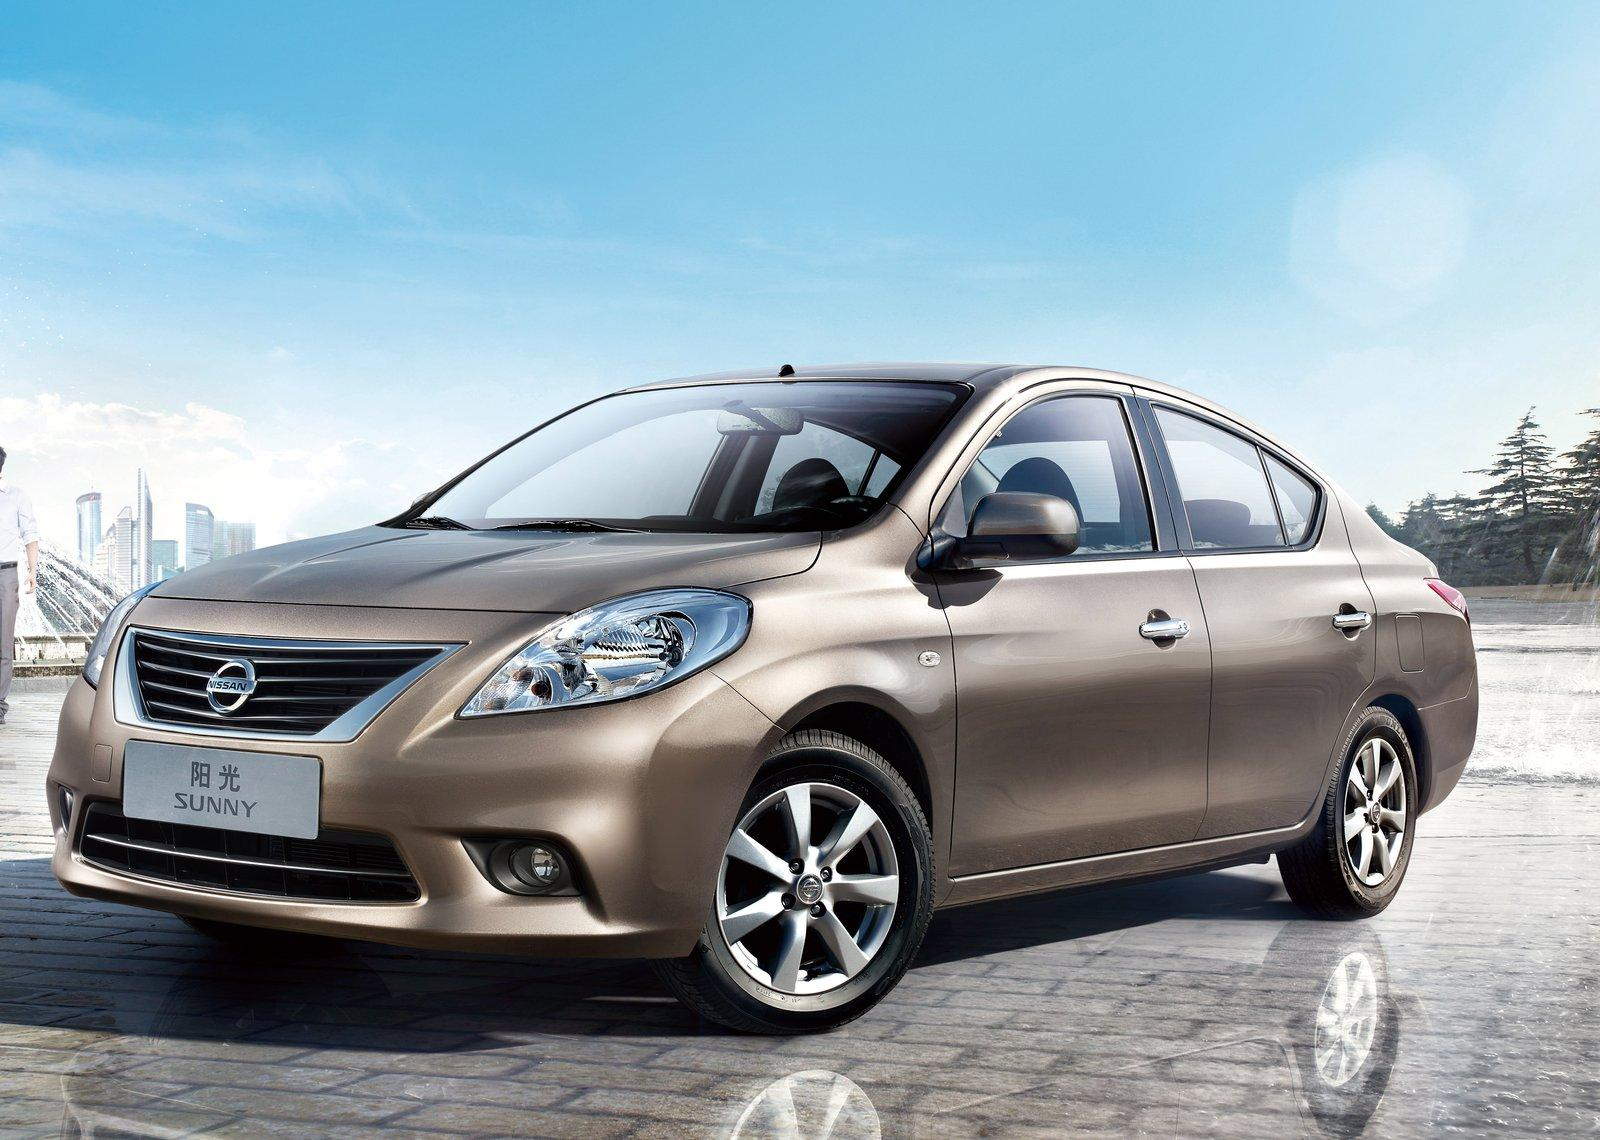 Nissan Sunny  - Specifications, Price, Review, Colors - Discounts 2017